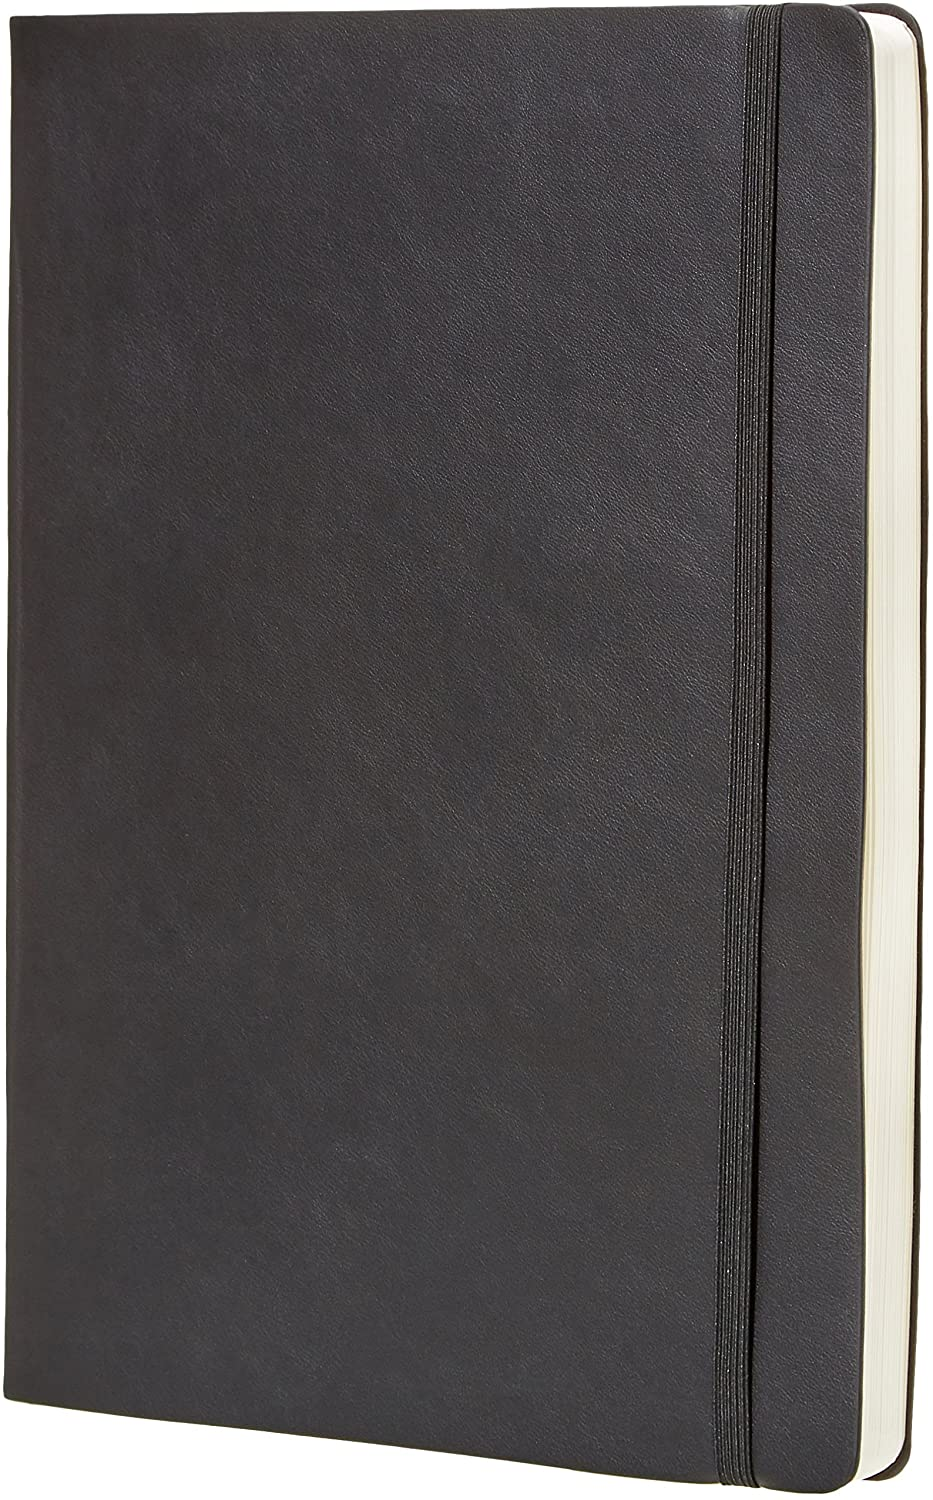 DHgateBasics Daily Planner and Journal - 8.5 Inch x 11 Inch, Soft Cover